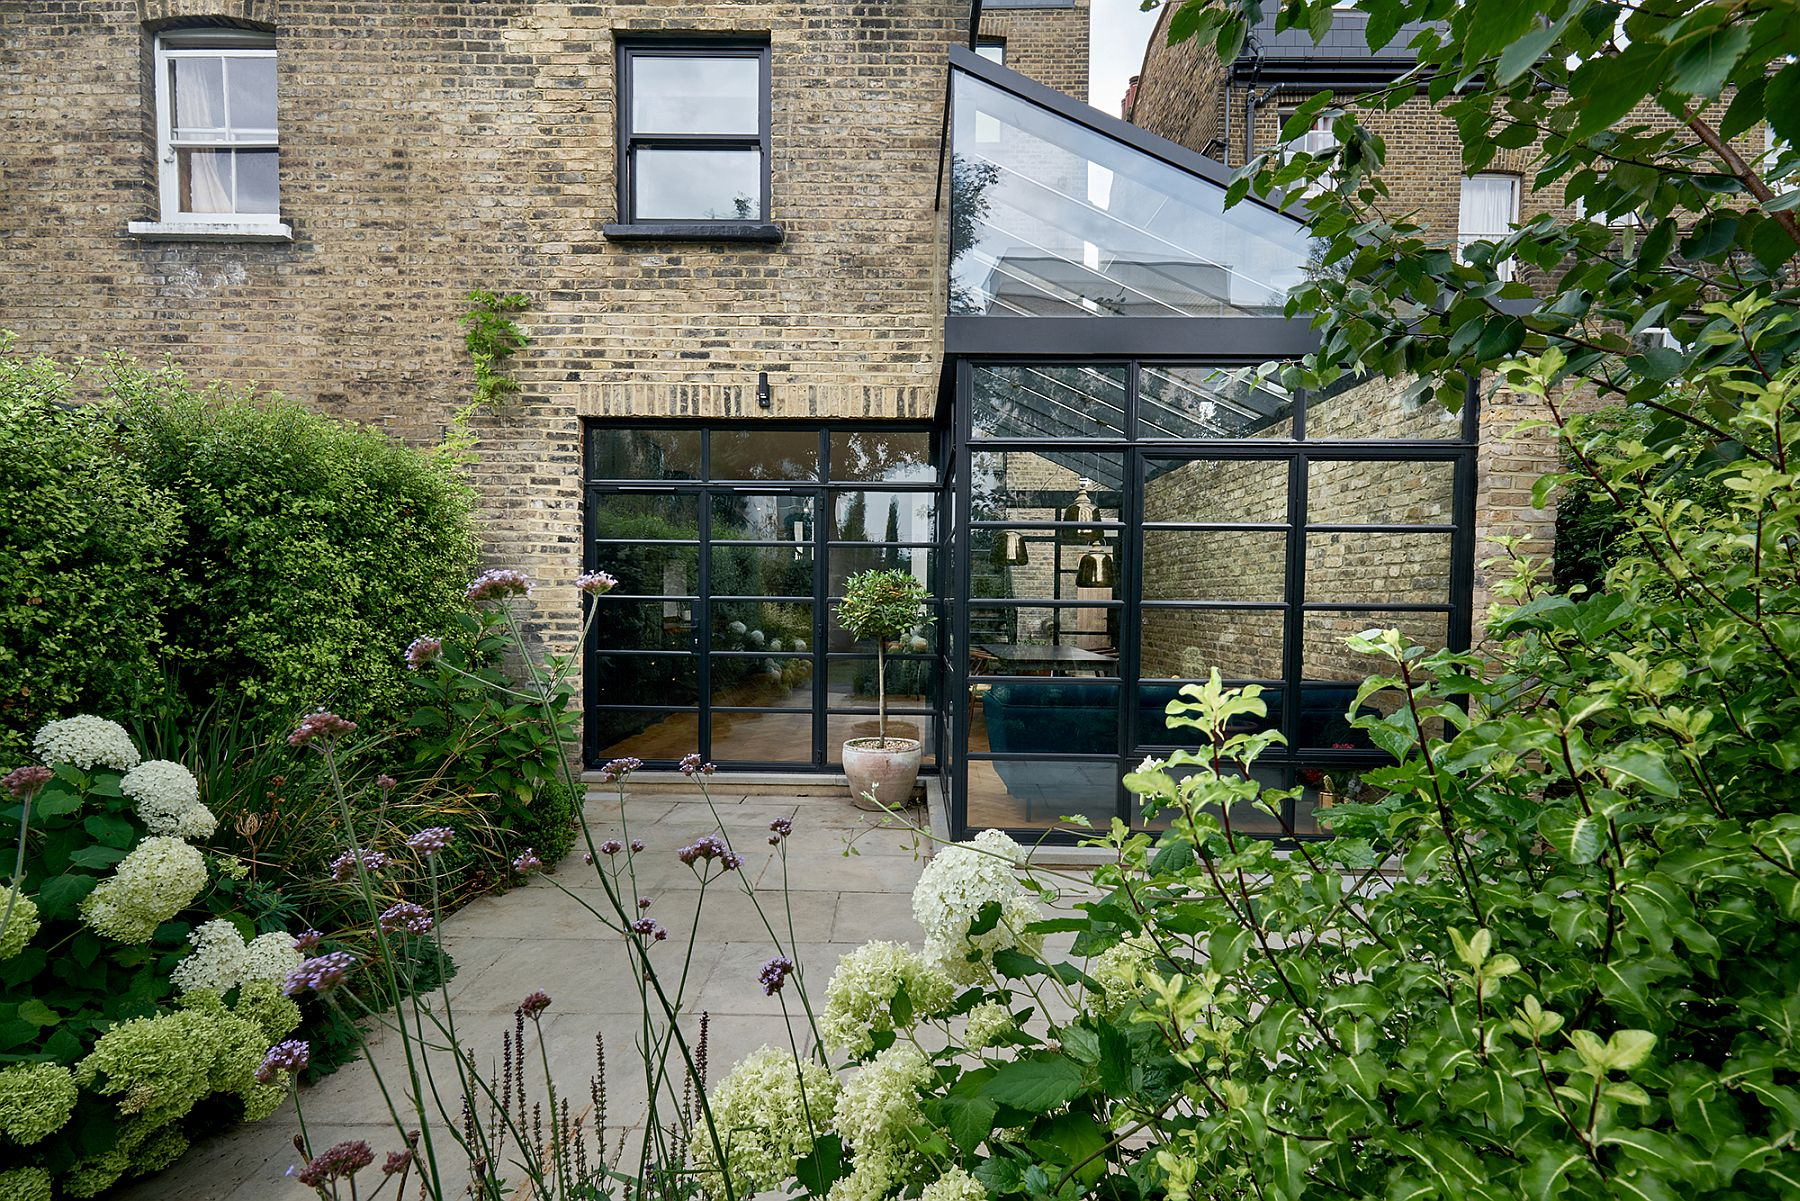 Garden outside becomes a part of the new dining room and kitchen thanks to the glassy extension Modern Extension Using Crittall Windows Refreshes Victorian Terrace House